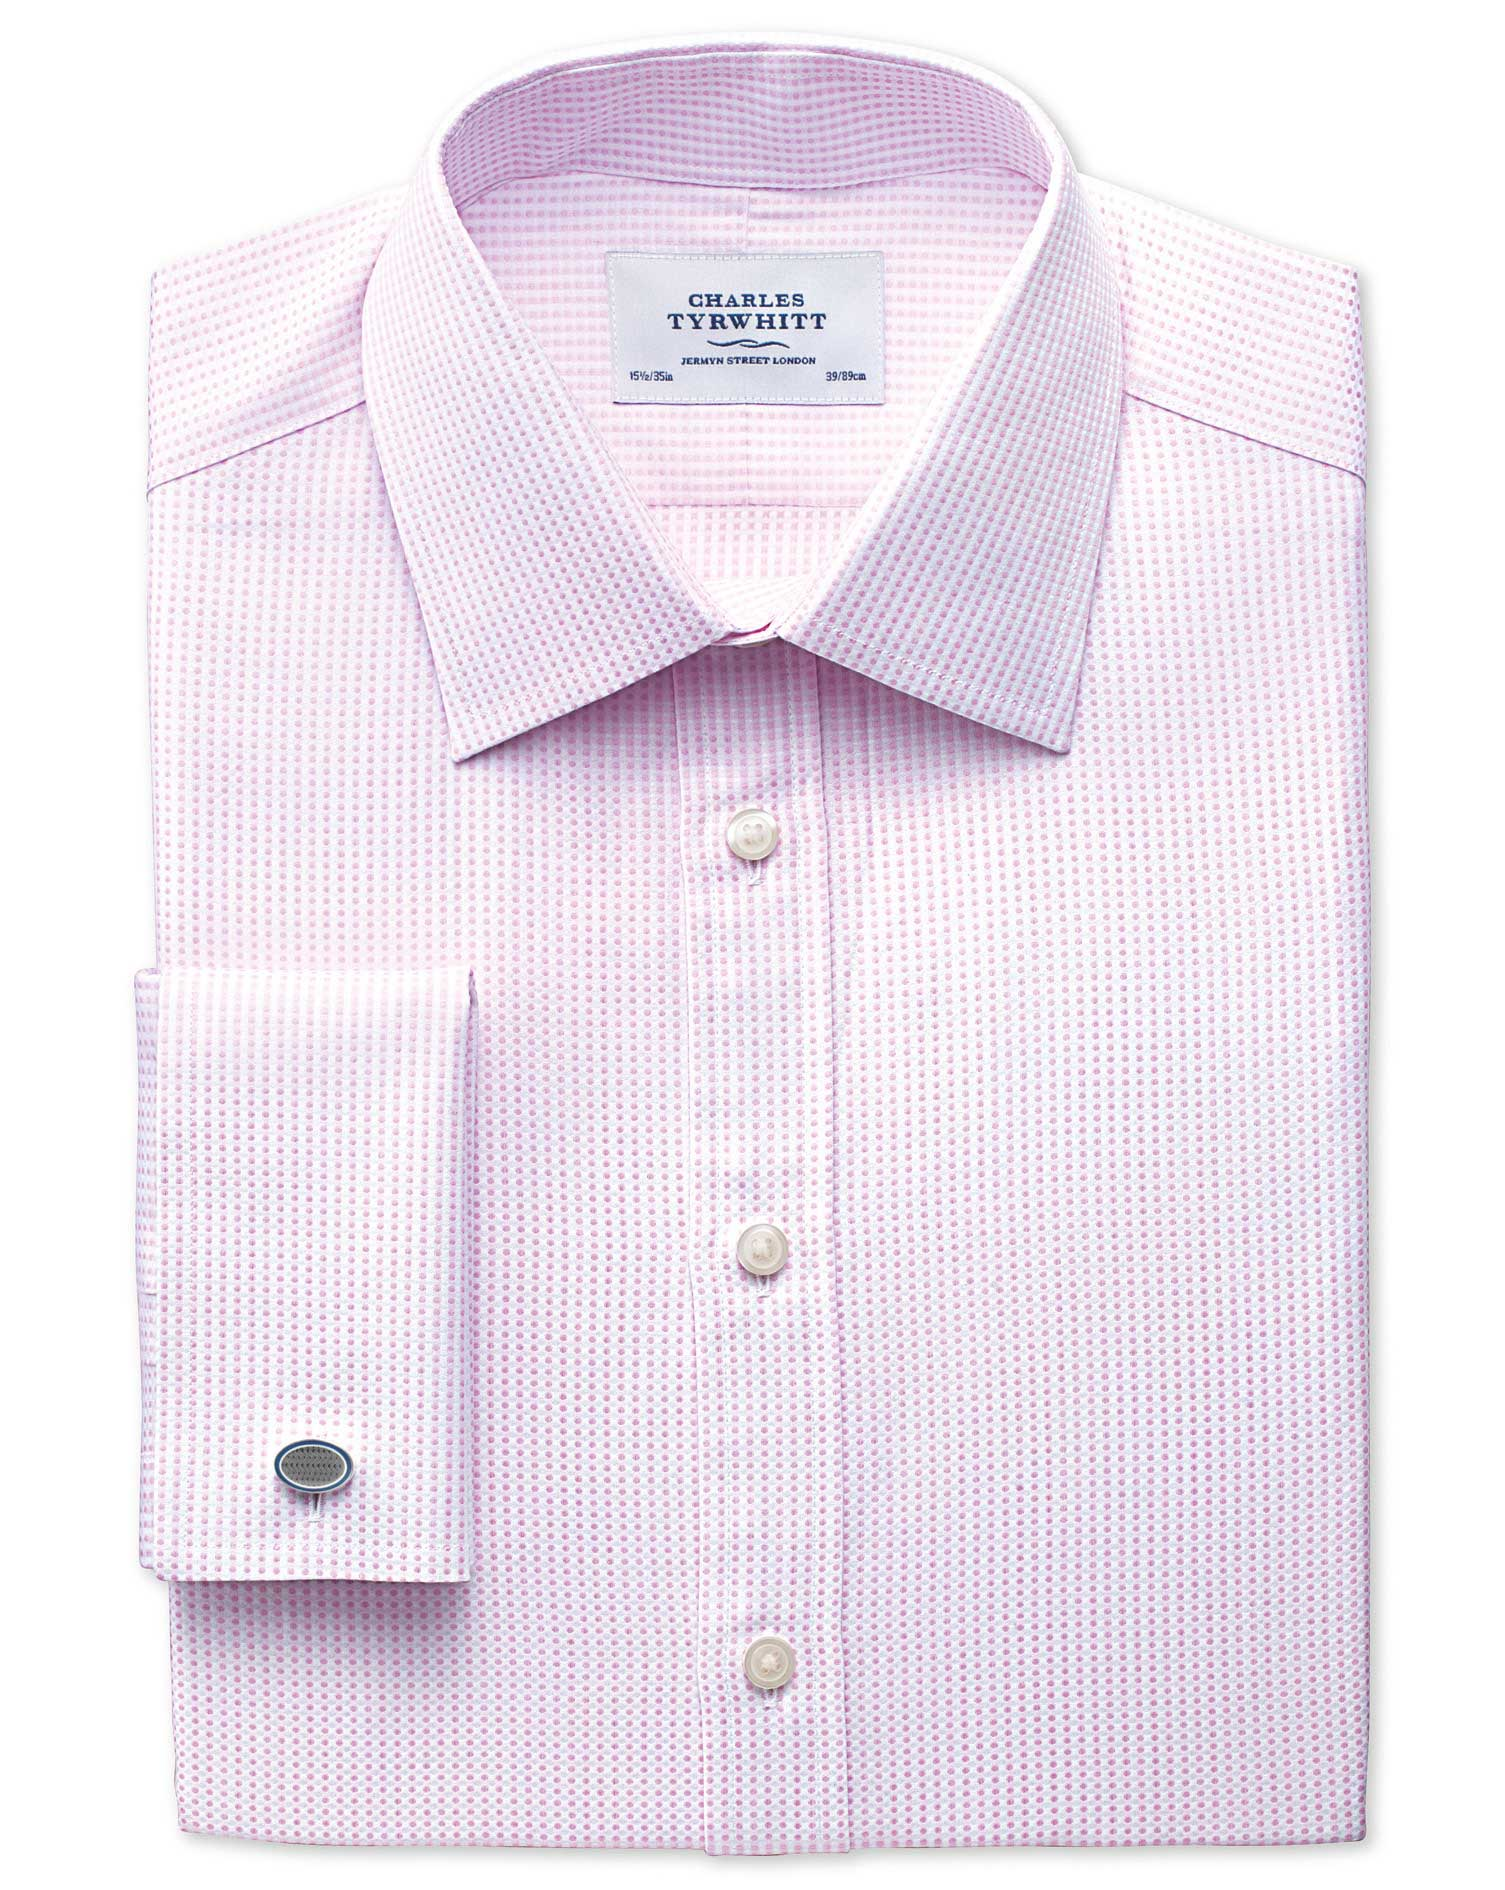 Slim Fit Pima Cotton Double-Faced Light Pink Formal Shirt Single Cuff Size 16/38 by Charles Tyrwhitt